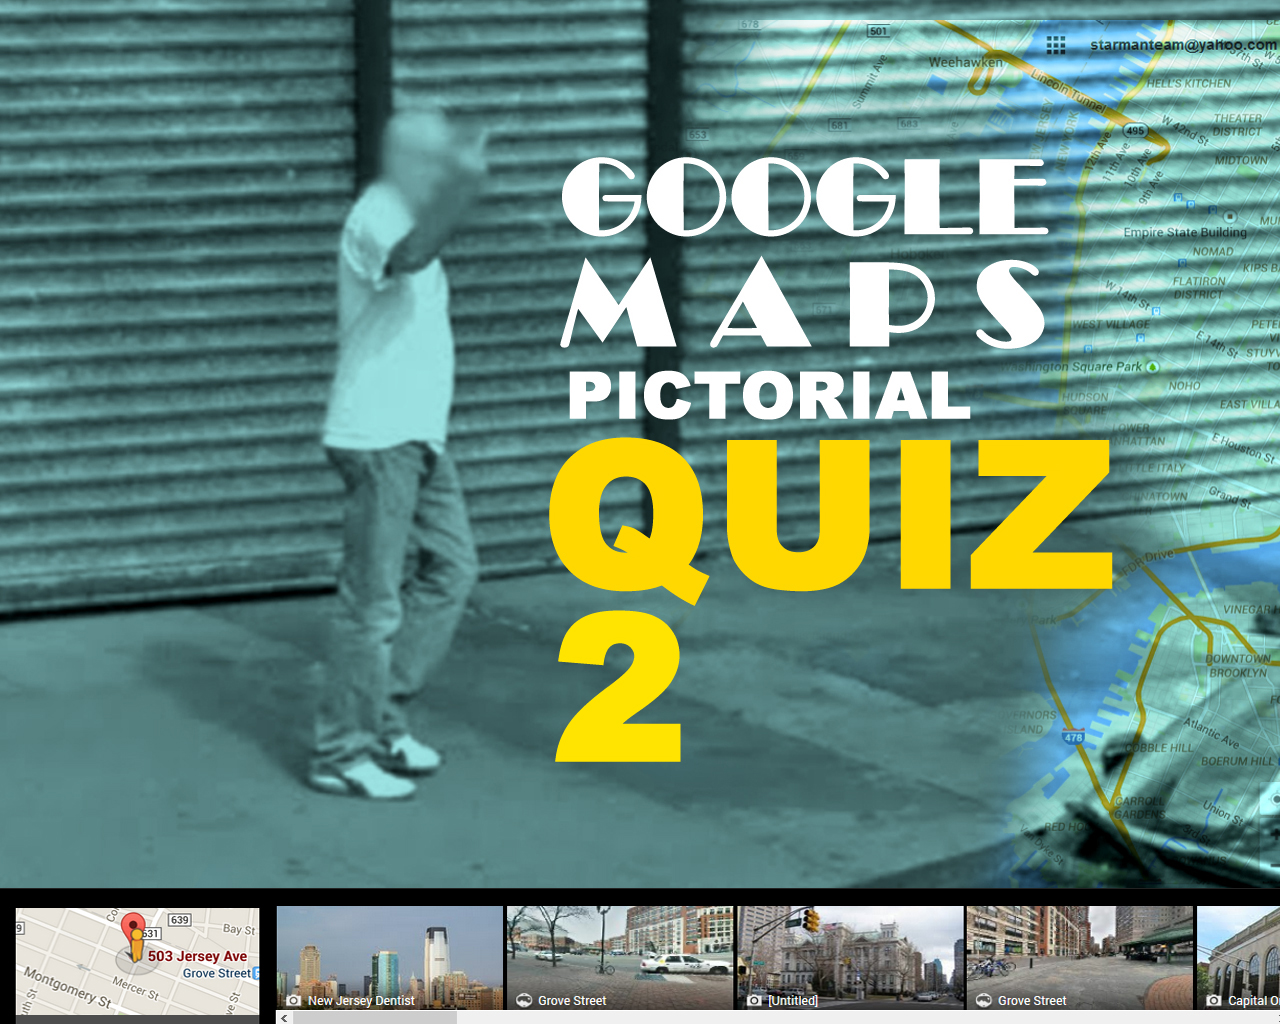 google maps pictorial quiz icon 2